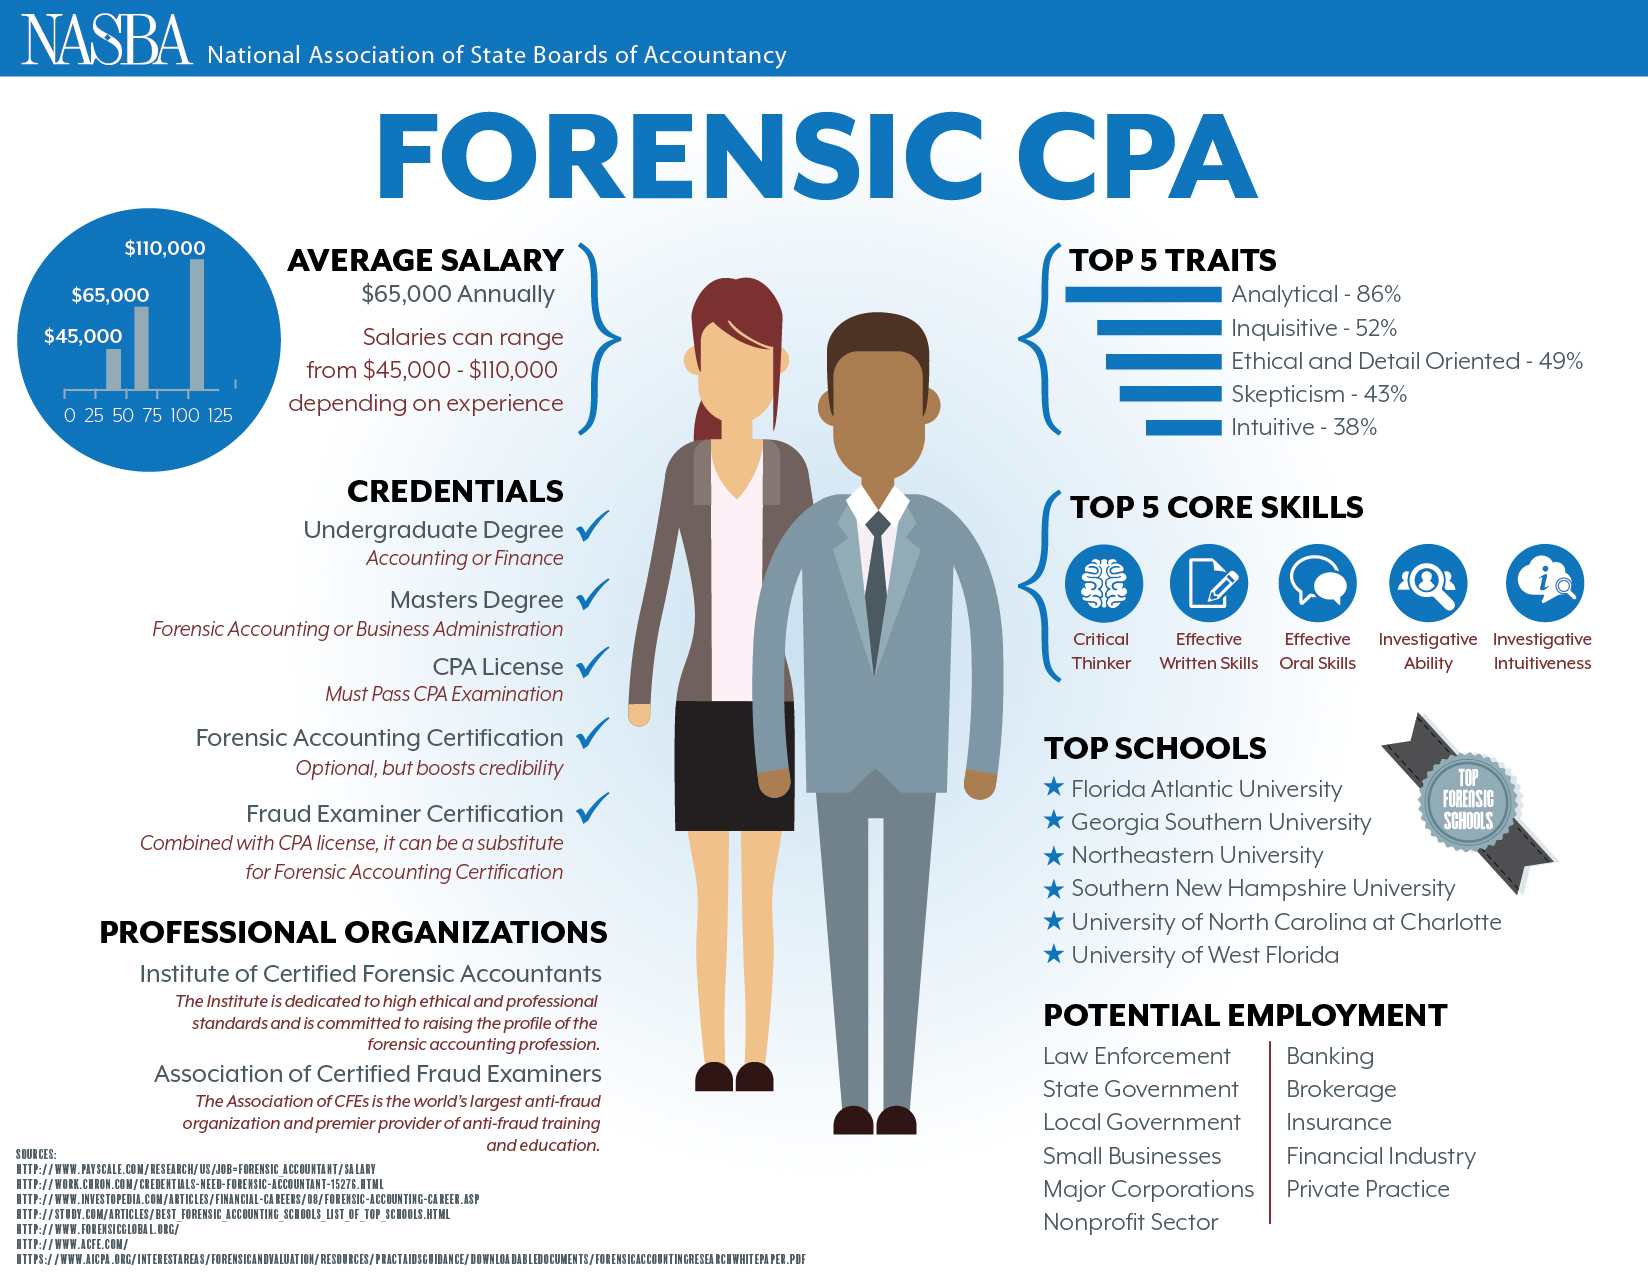 What Does It Take To Be A Forensic Cpa Nasba